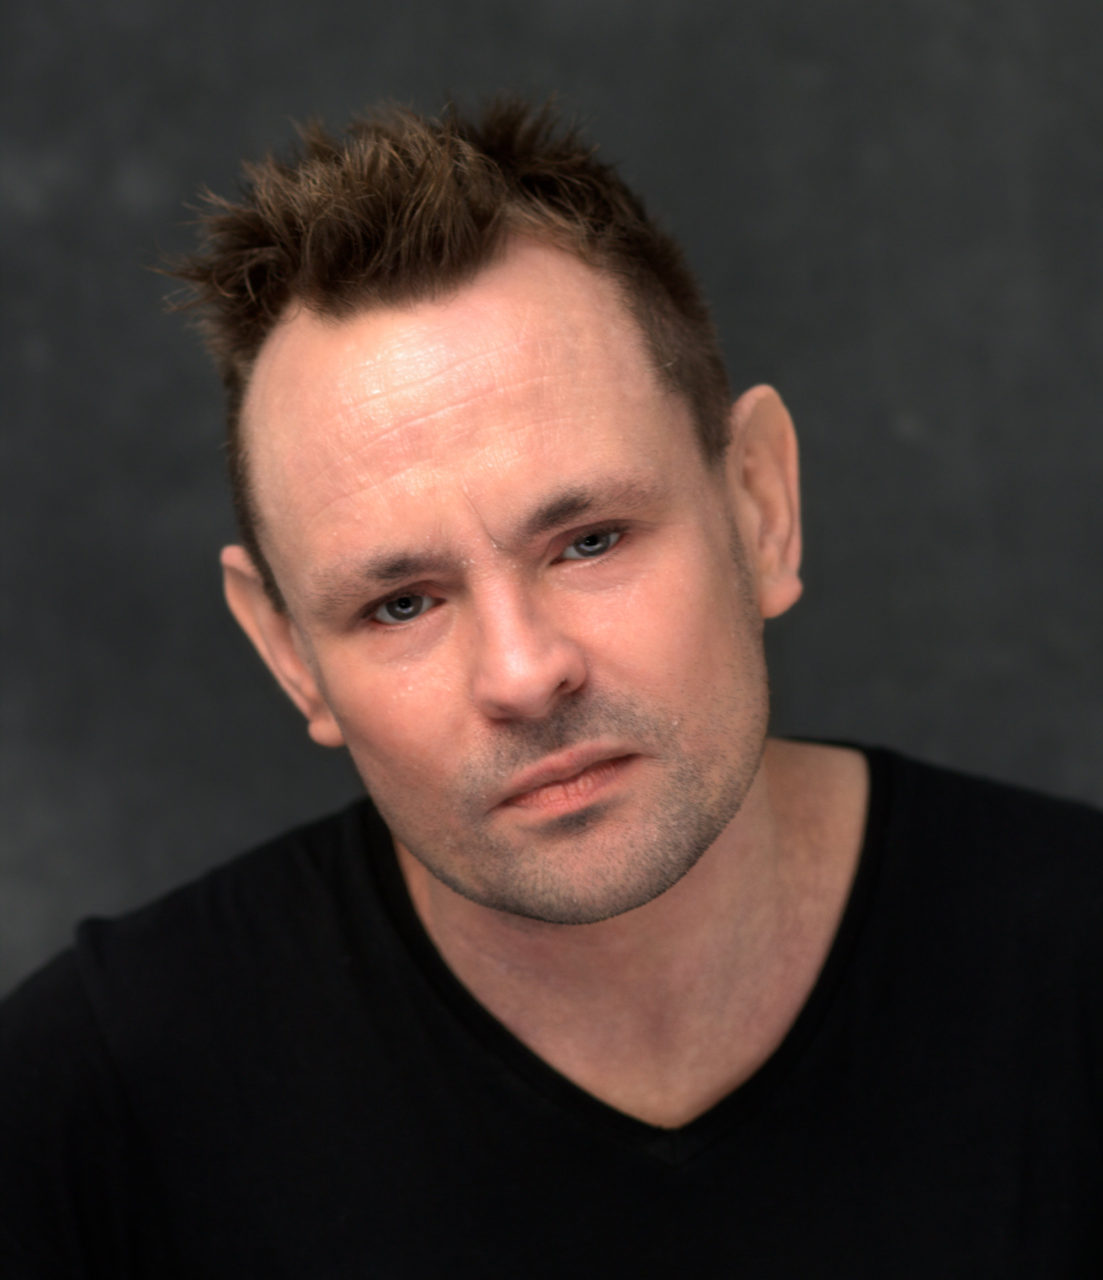 Actor headshot 2021, Male, White, ages 35-45